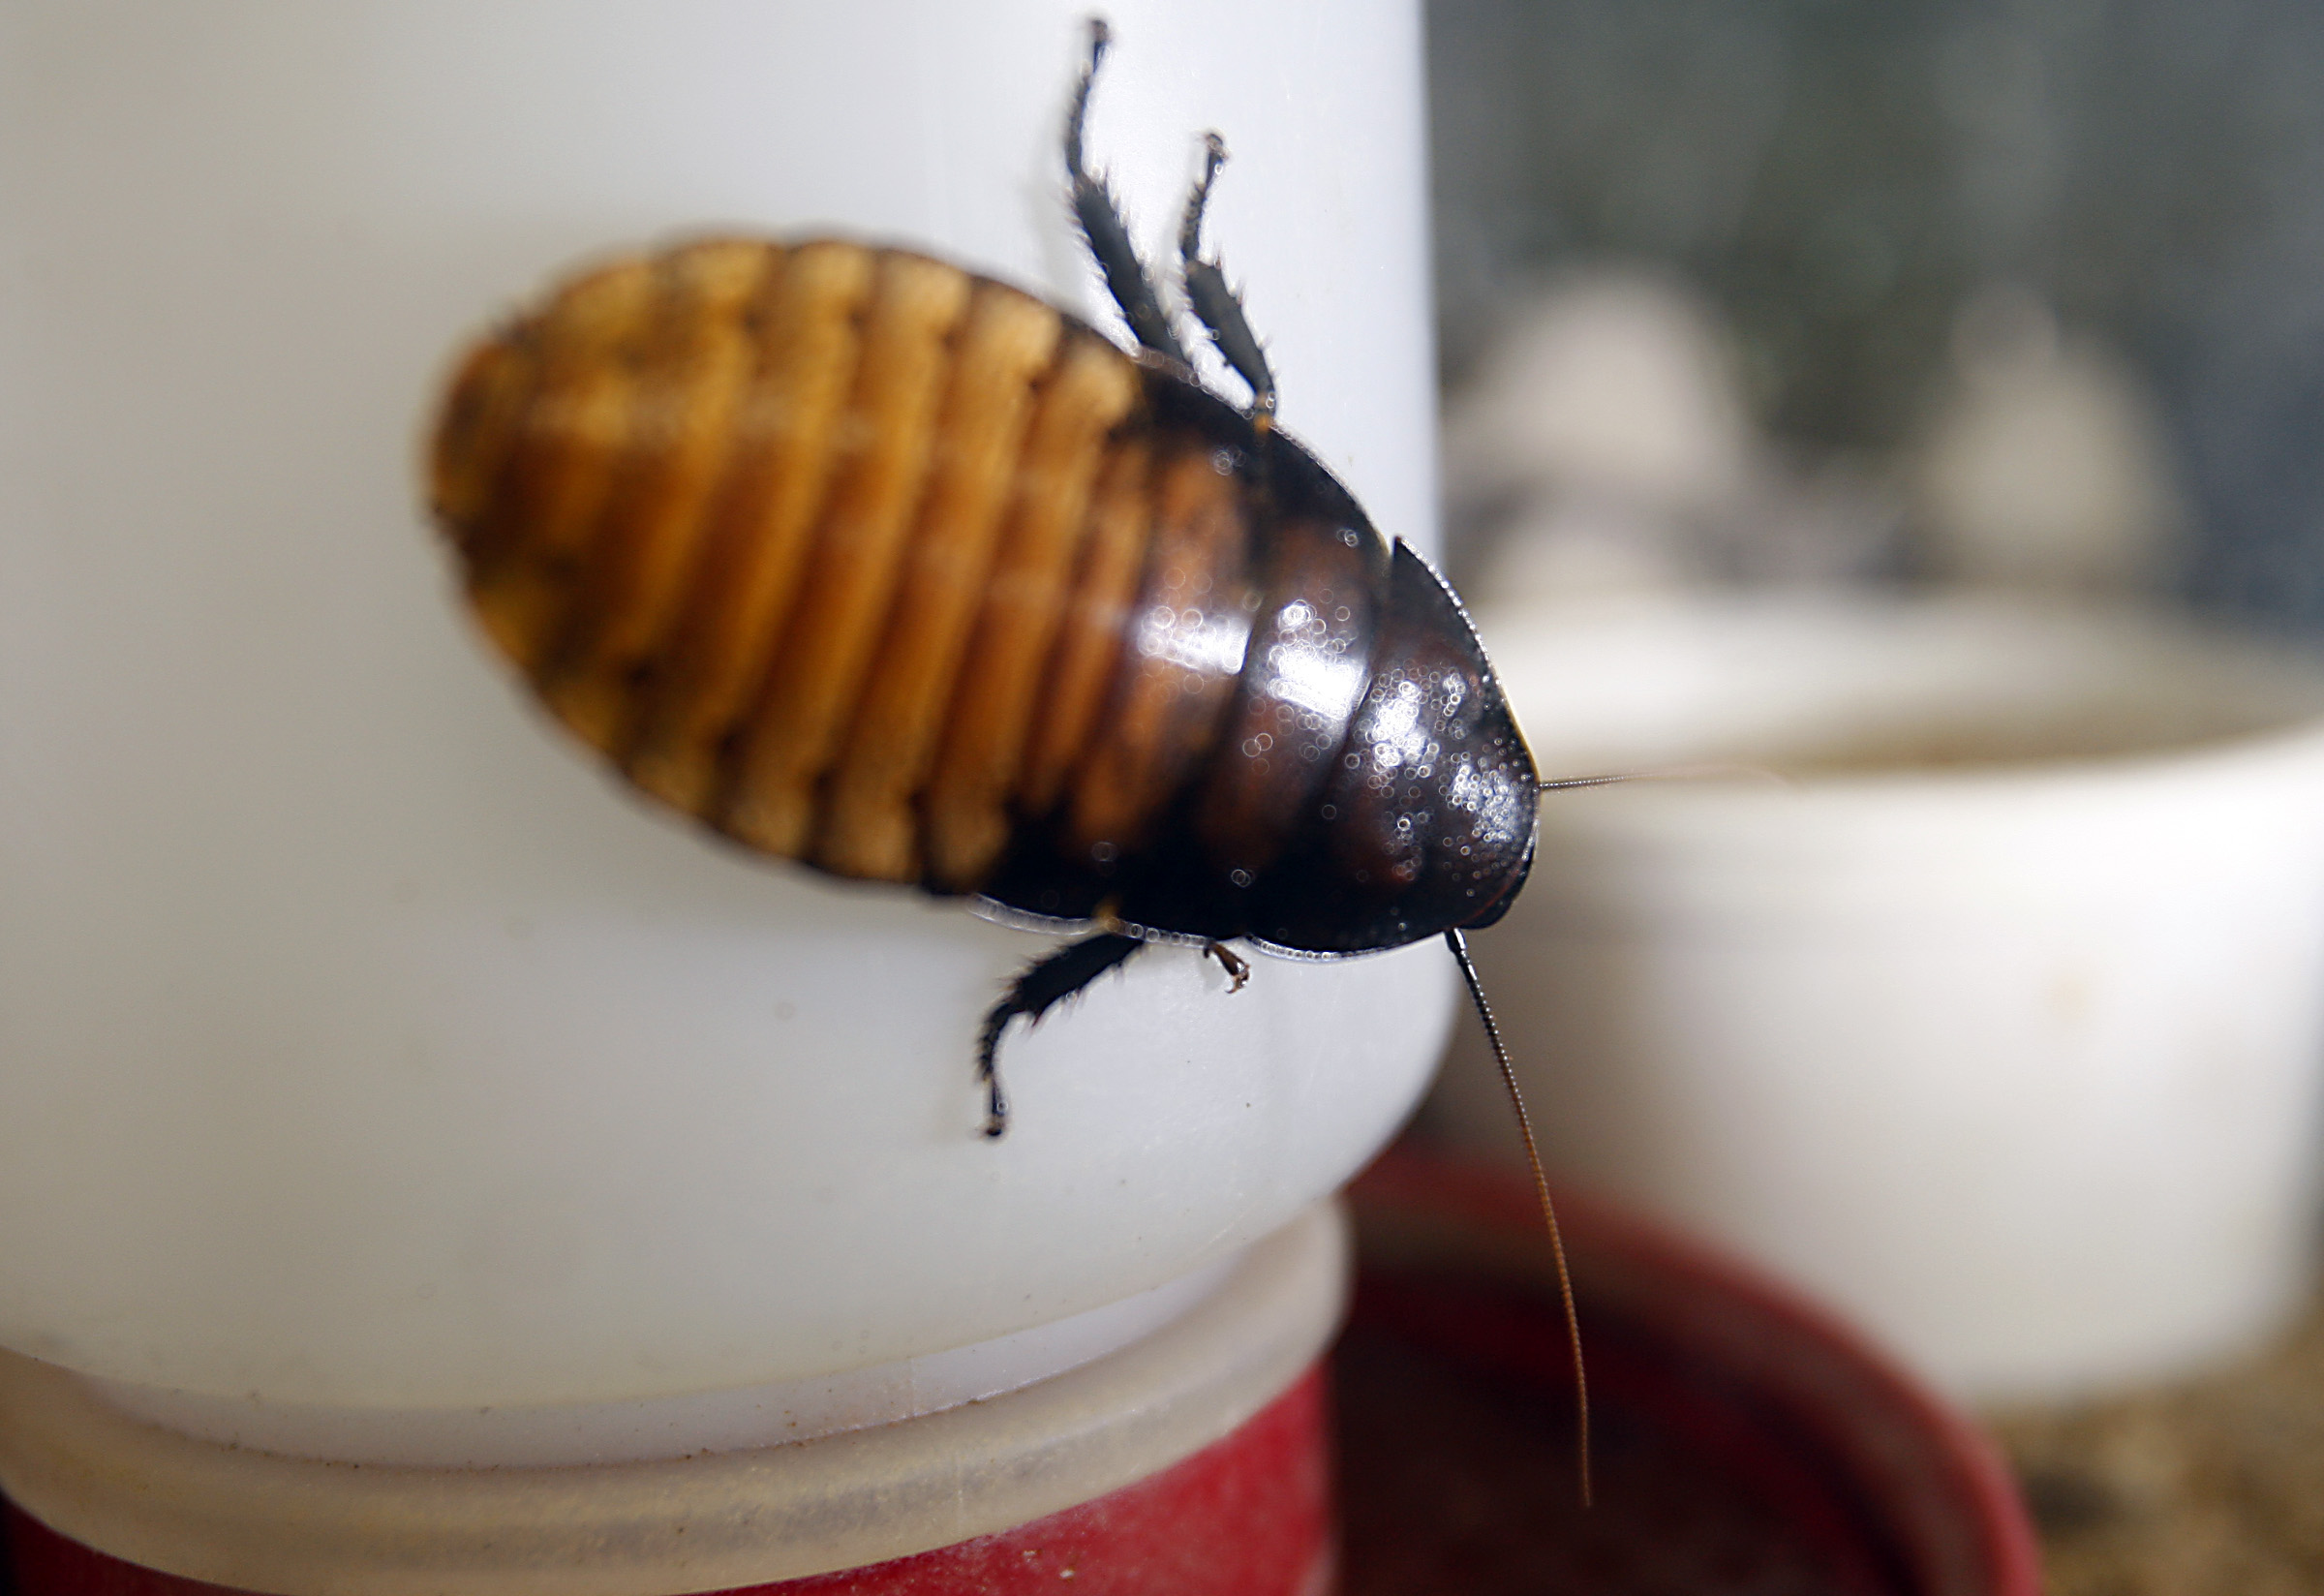 A hissing roach grows in a terrarium at Rainbow Mealworms and Crickets, one of the largest wholesal